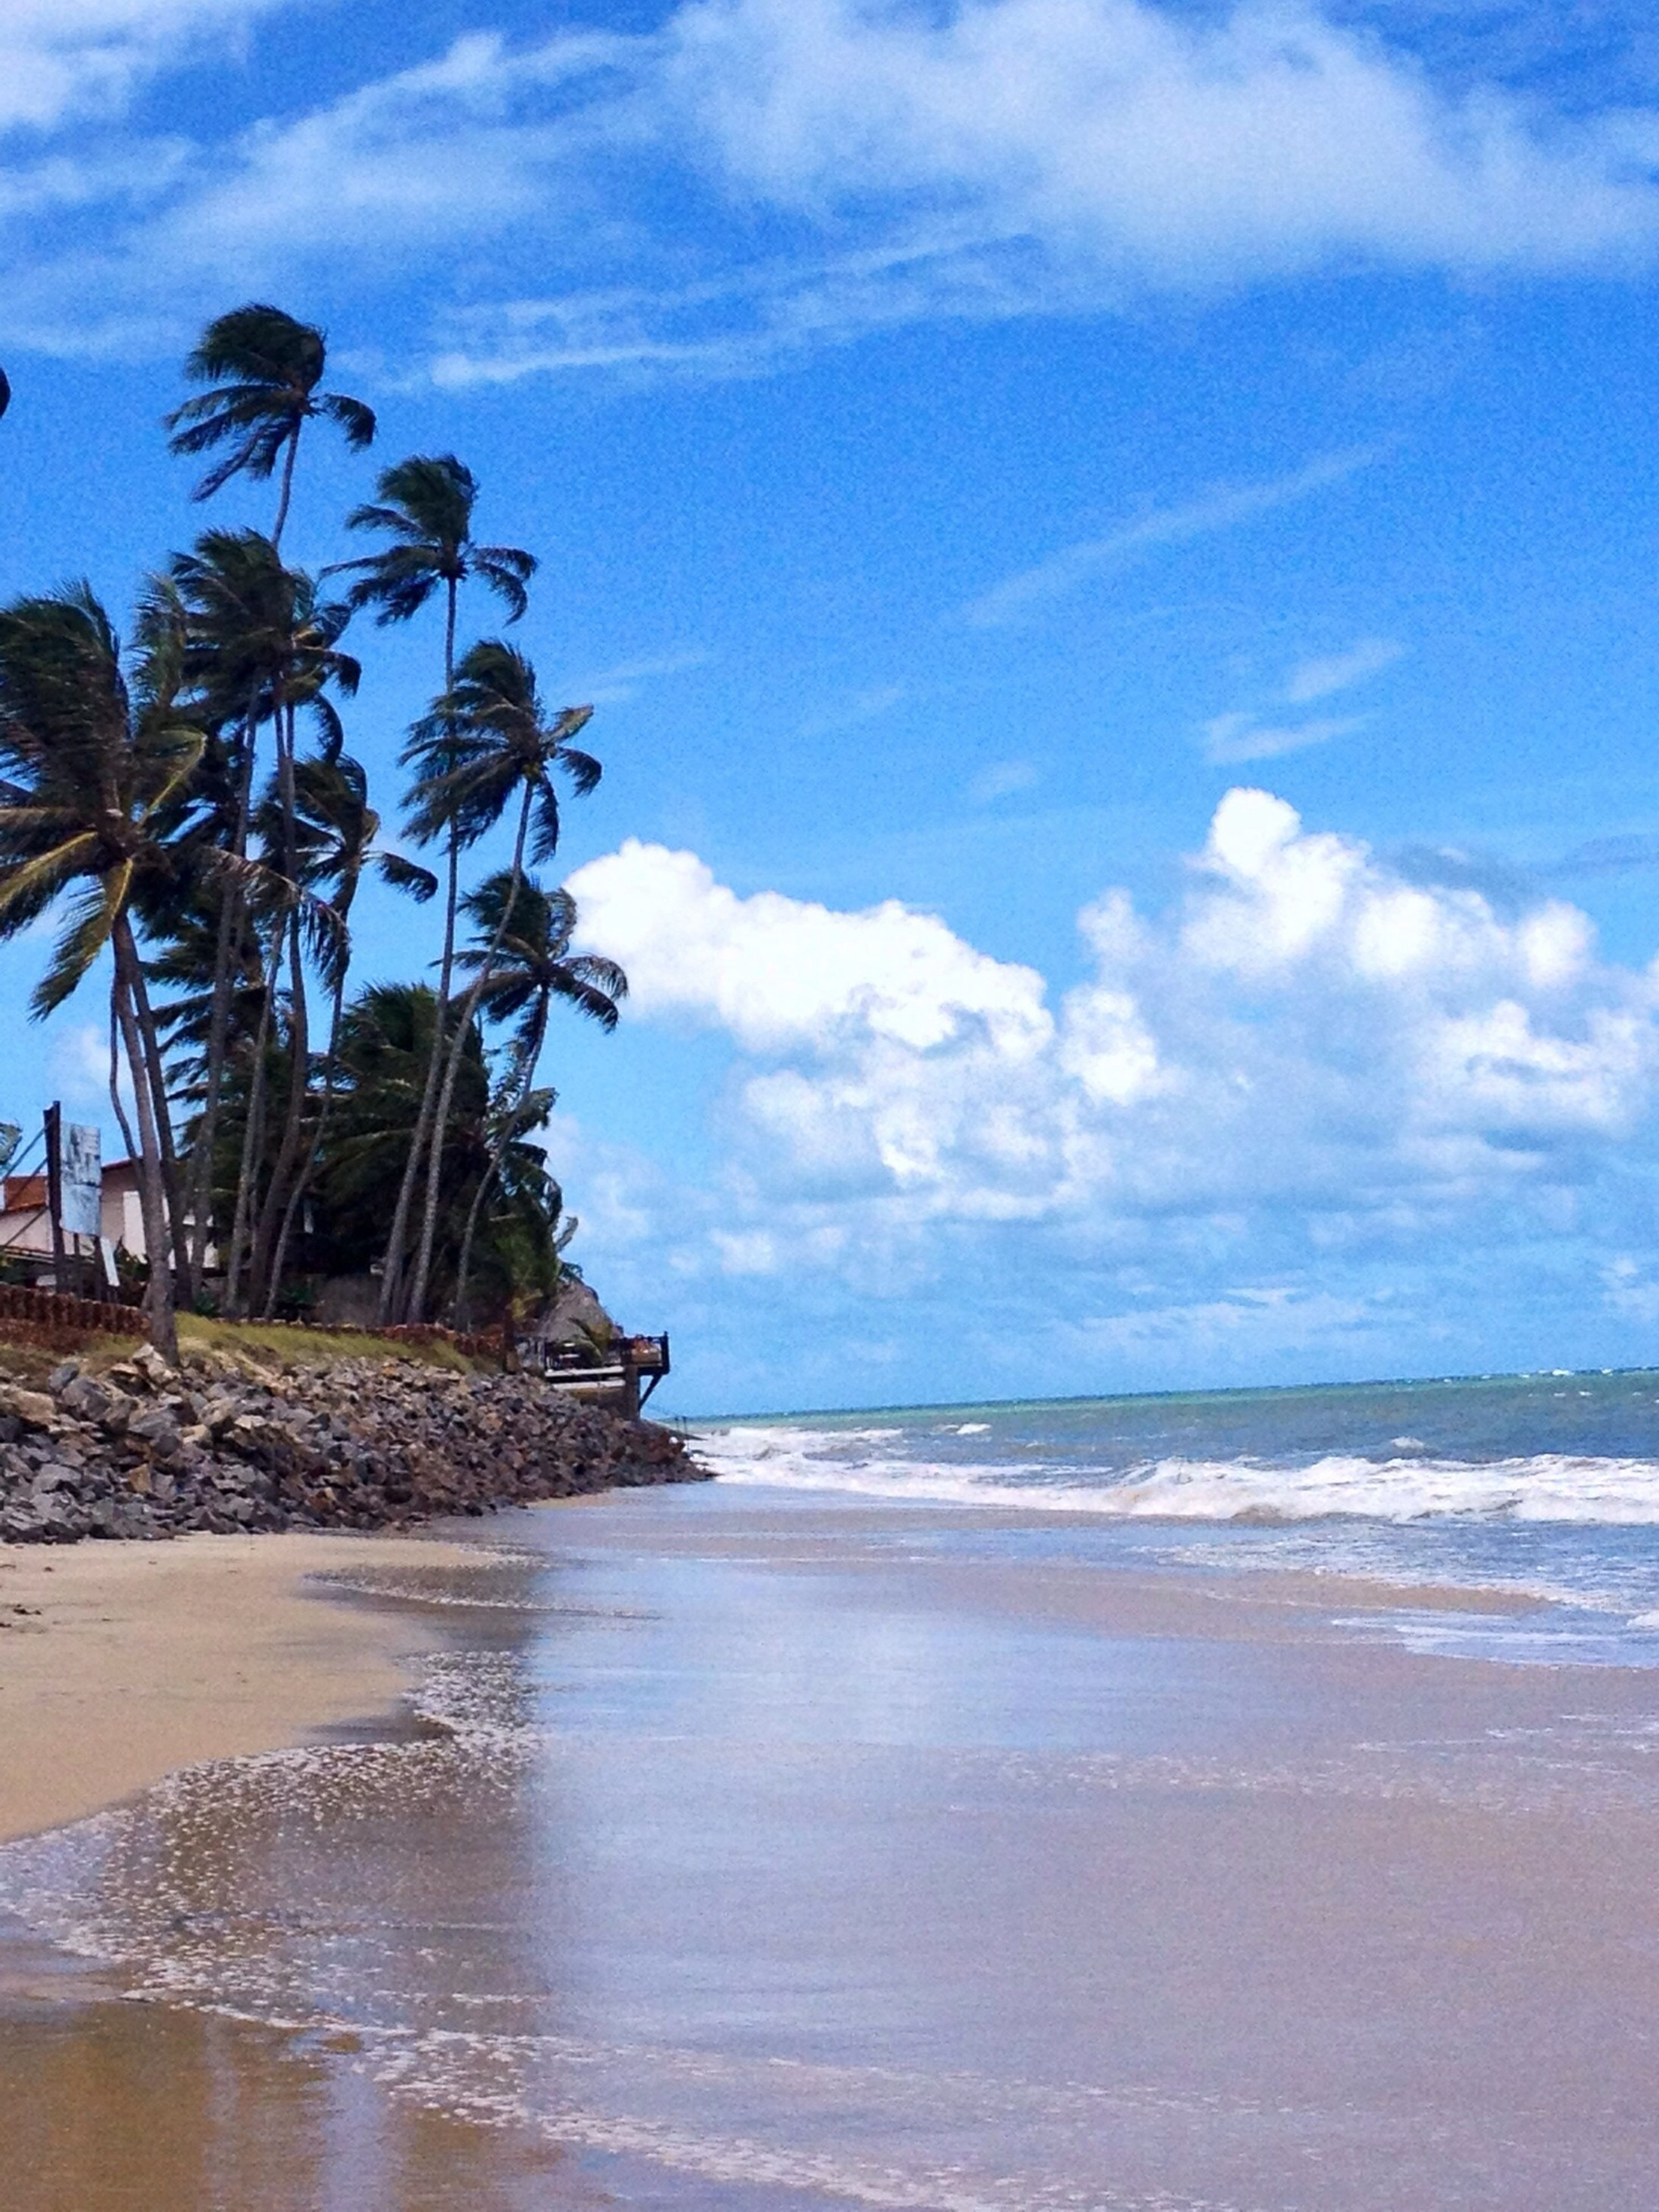 sea, beach, horizon over water, water, sky, shore, sand, tranquil scene, tranquility, scenics, cloud - sky, beauty in nature, nature, palm tree, cloud, wave, coastline, tree, cloudy, idyllic